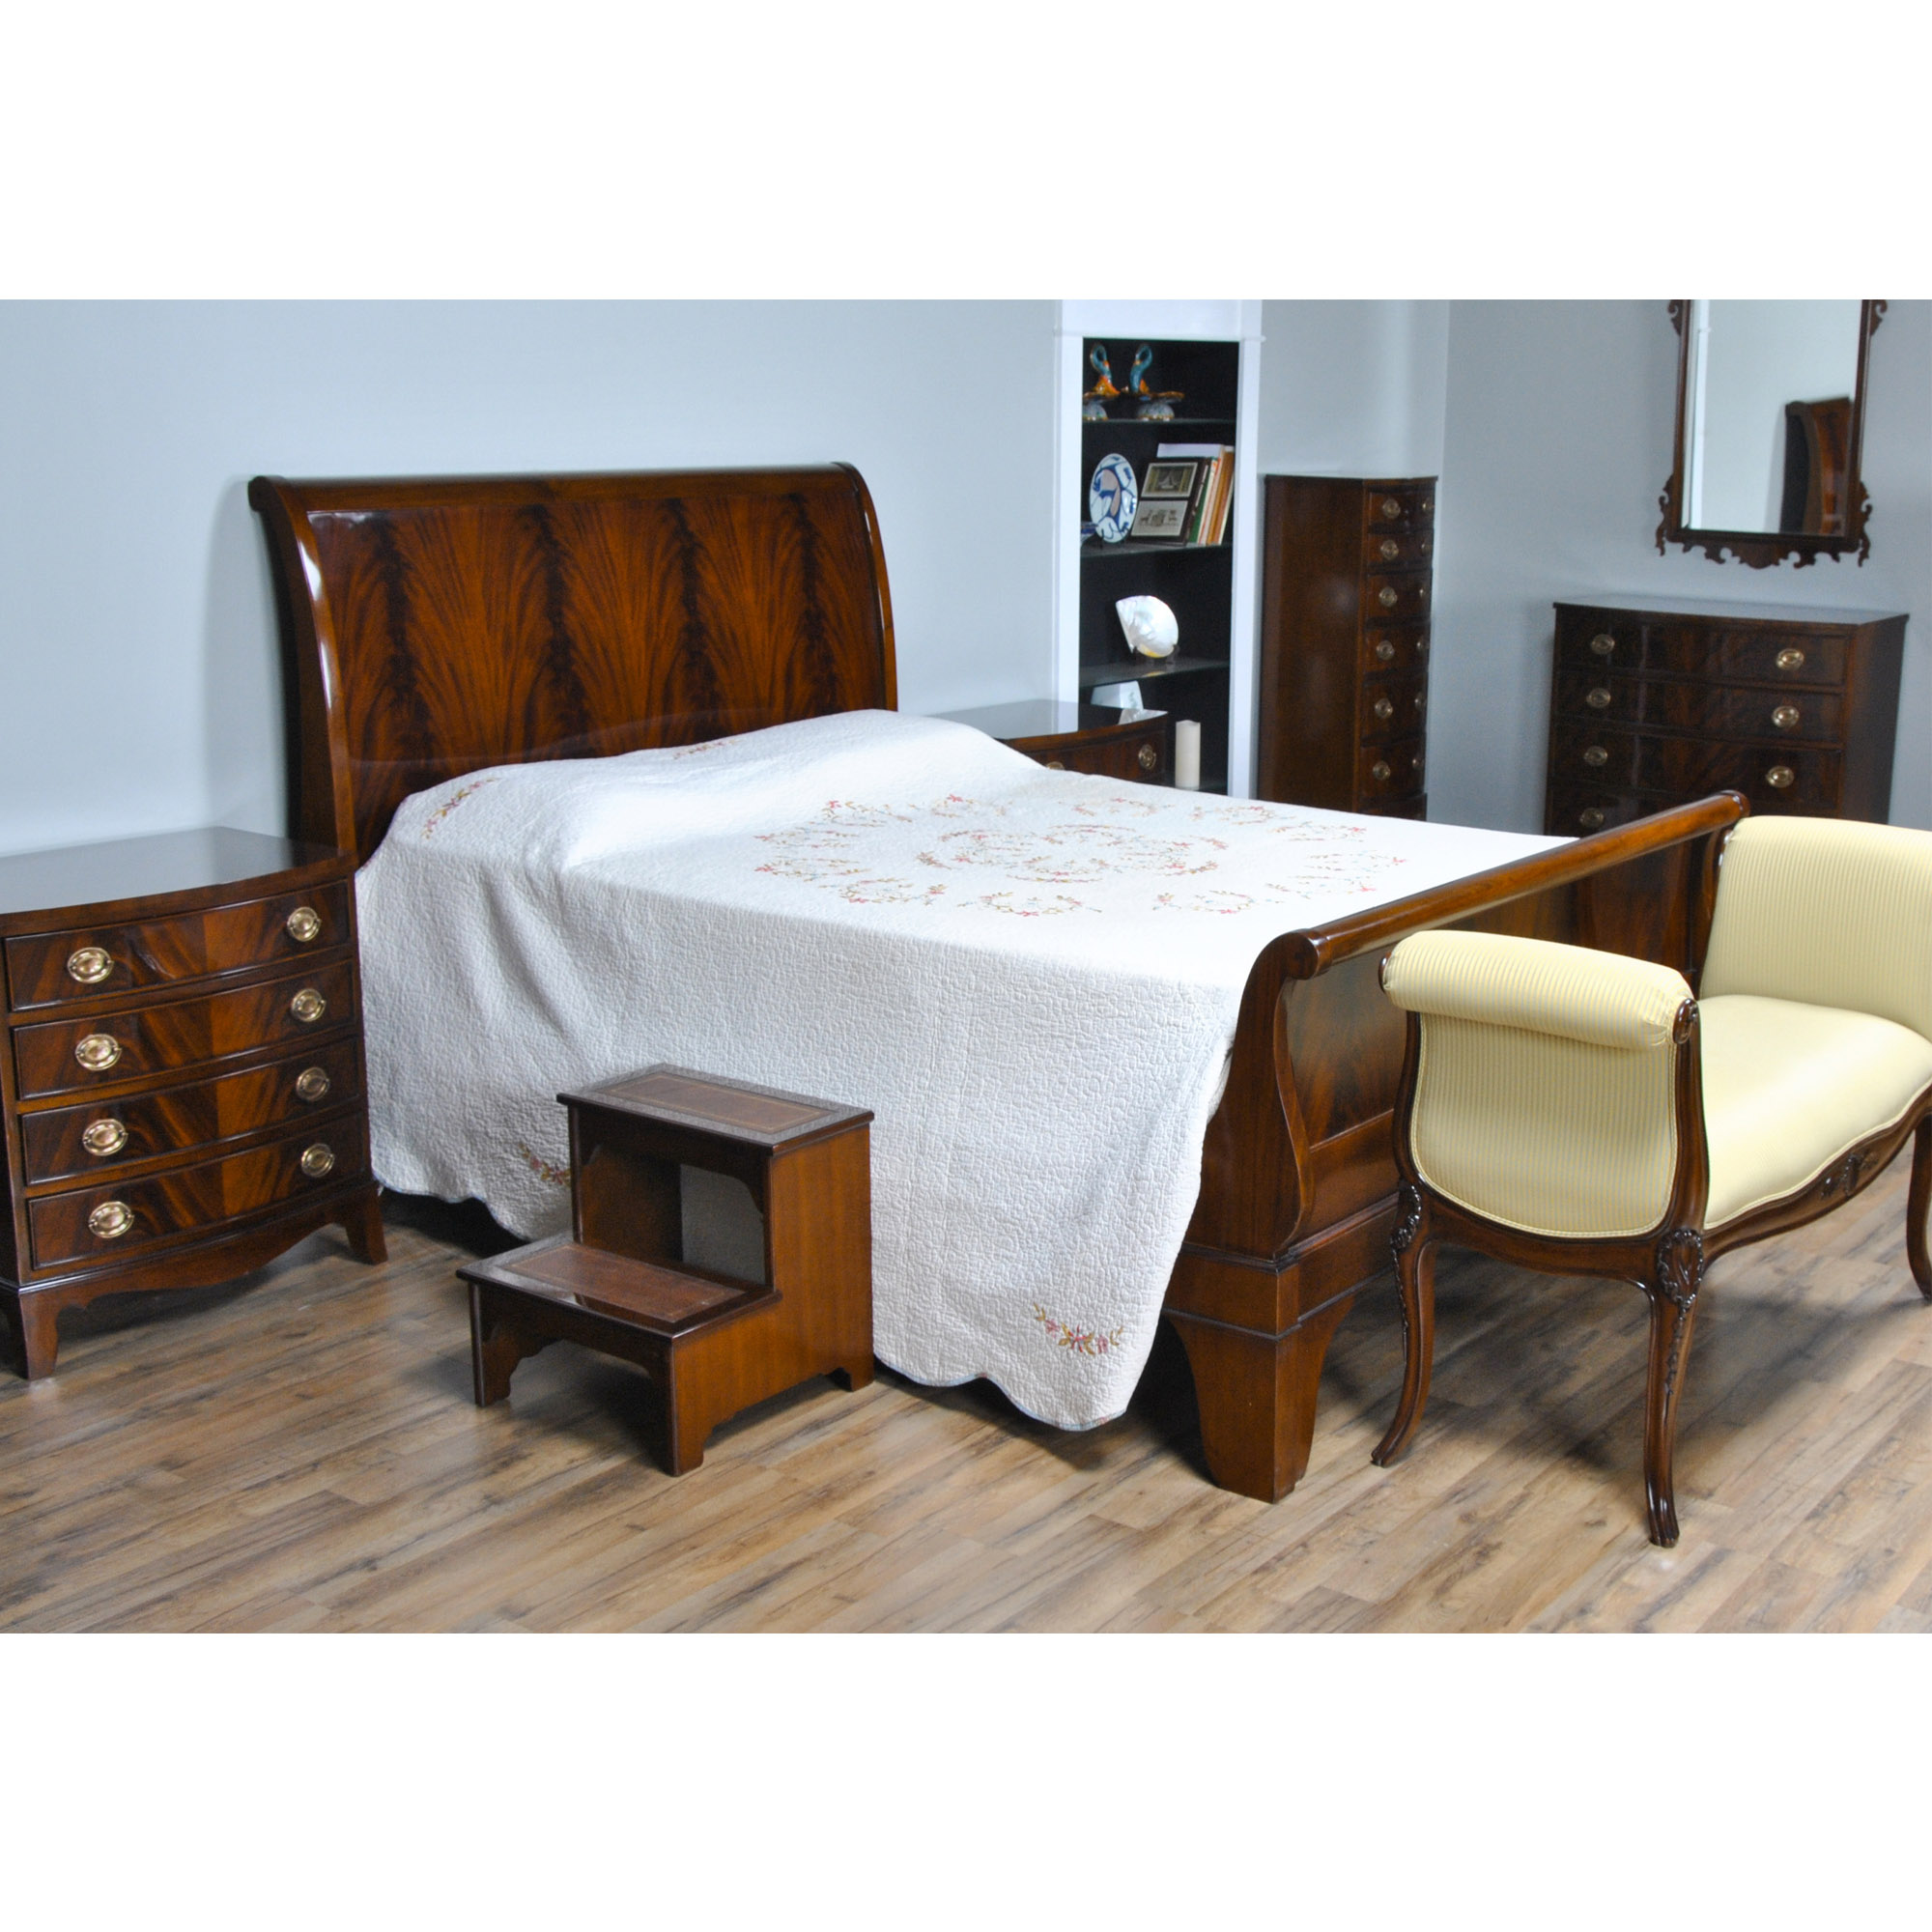 Dsc 0001 - King size sleigh bed bedroom set ...